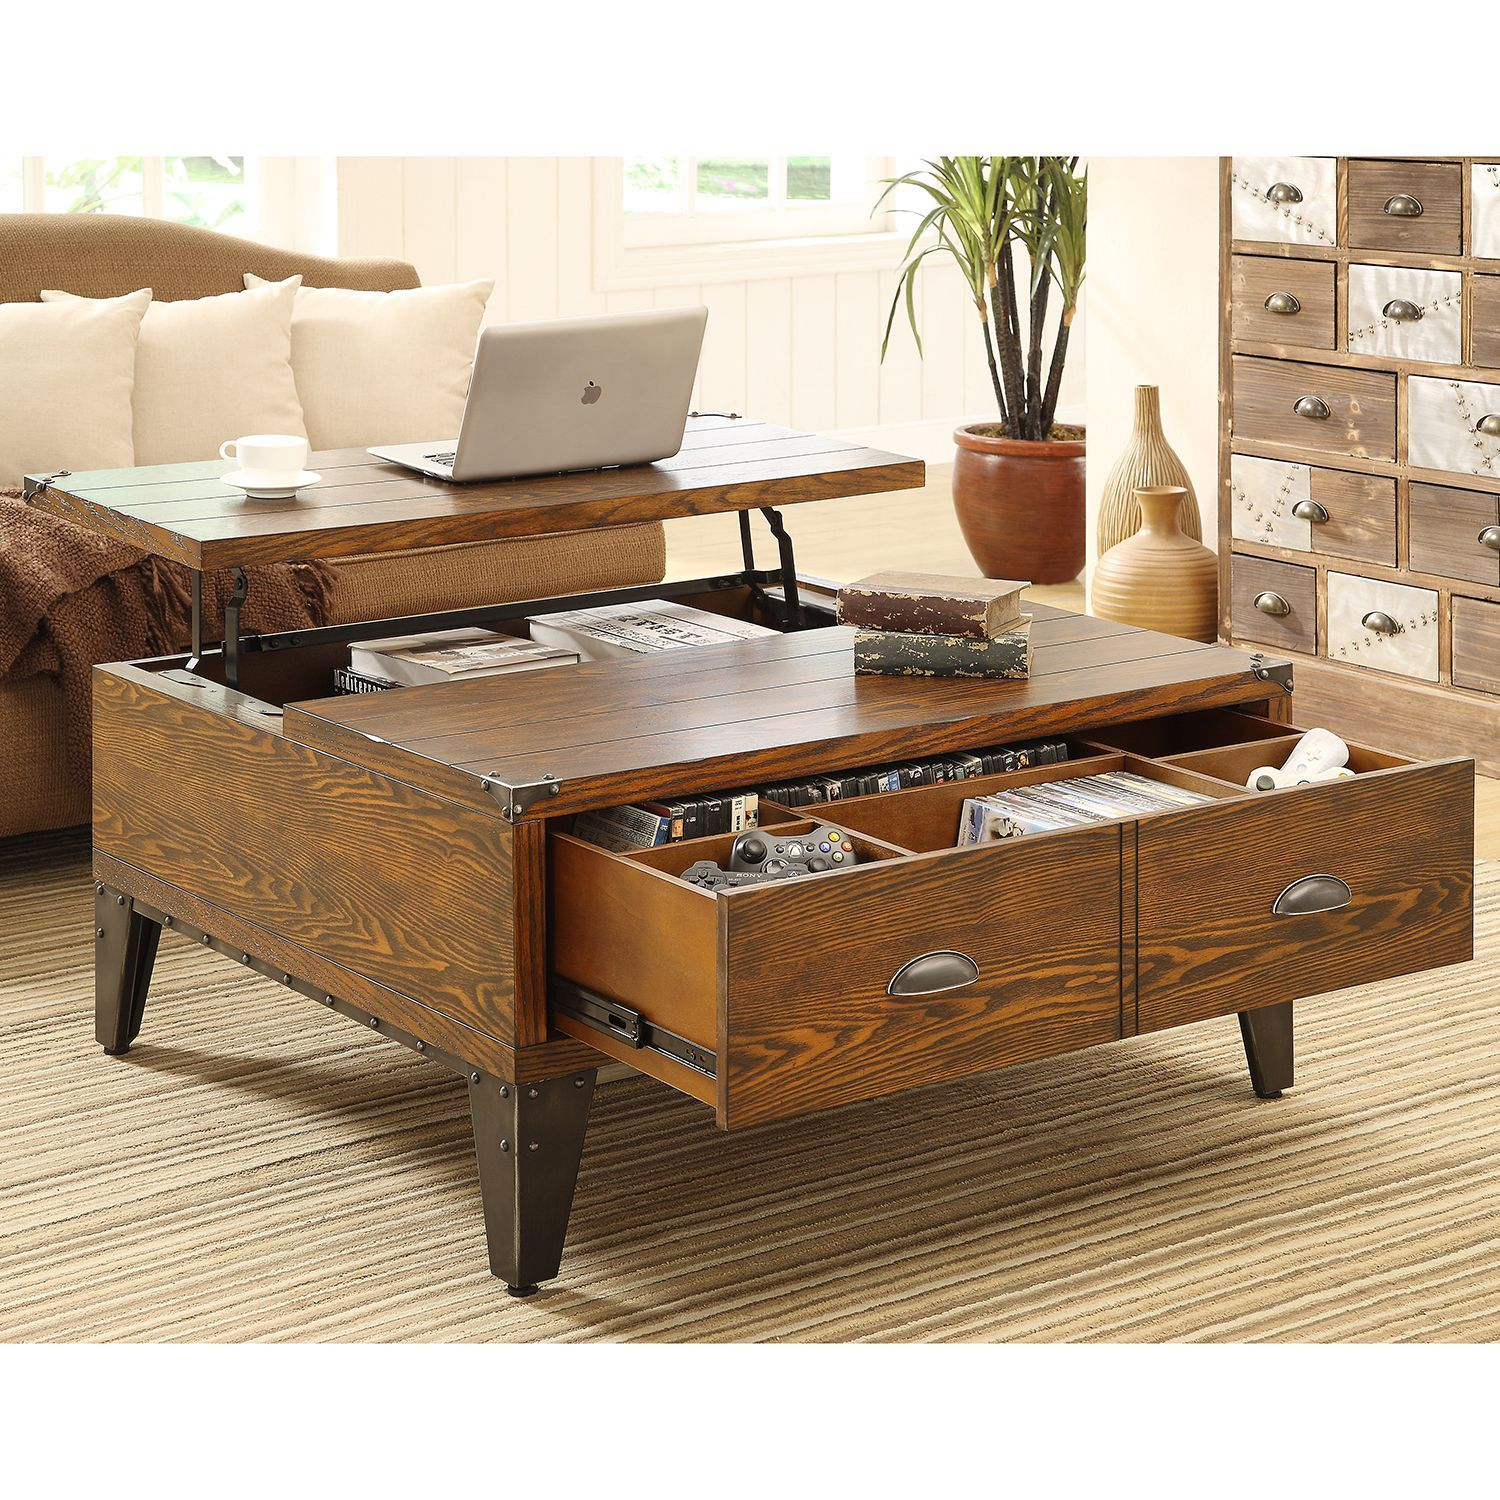 Wellington Lift Top Coffee Table Sams Club For The Home throughout sizing 1500 X 1500